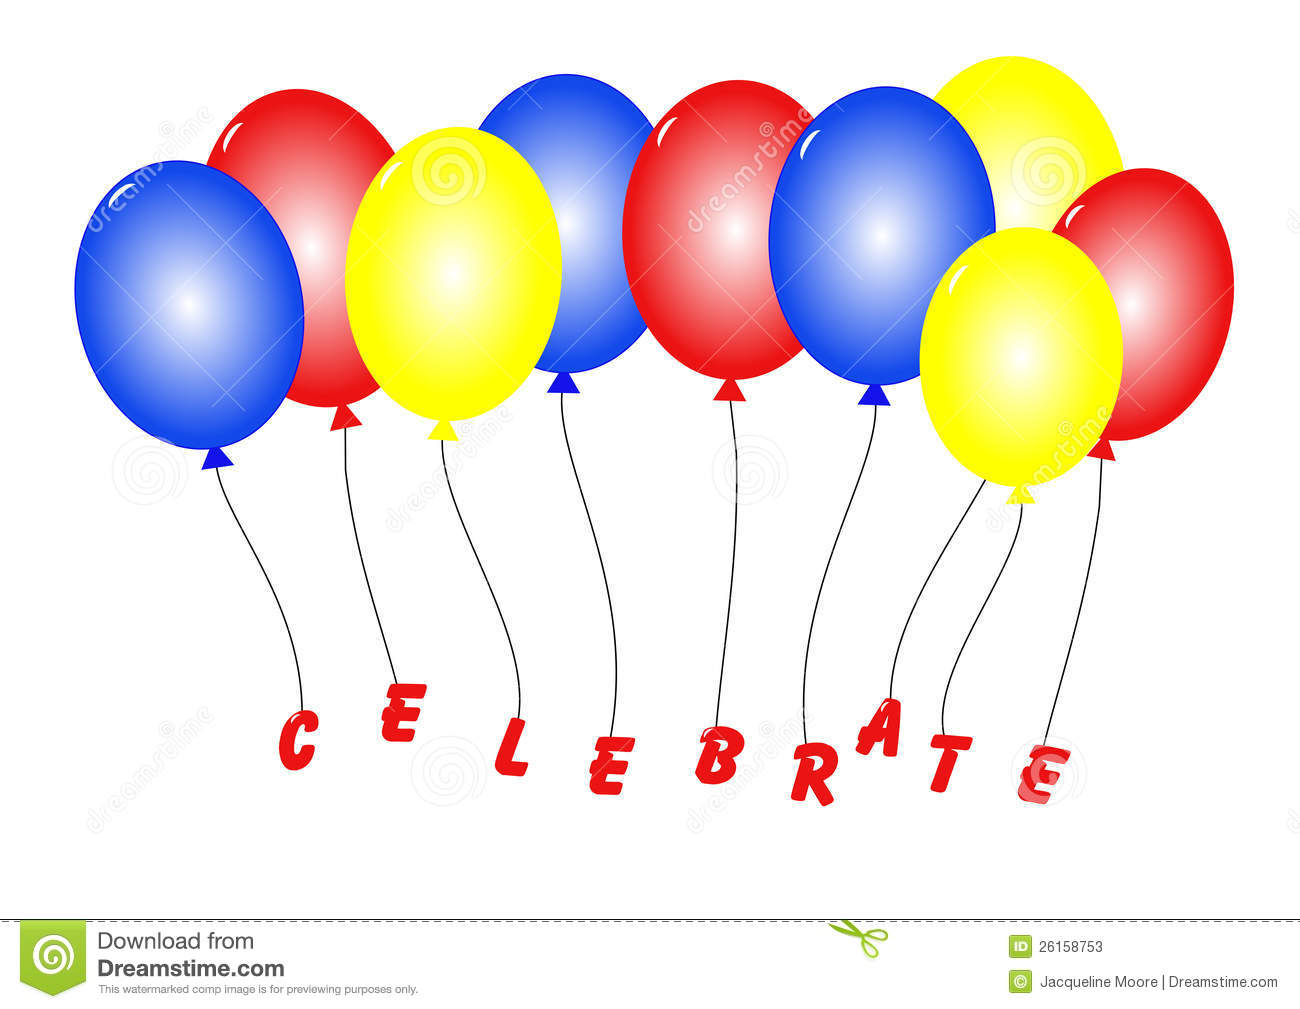 More similar stock images of ` Celebration balloons `